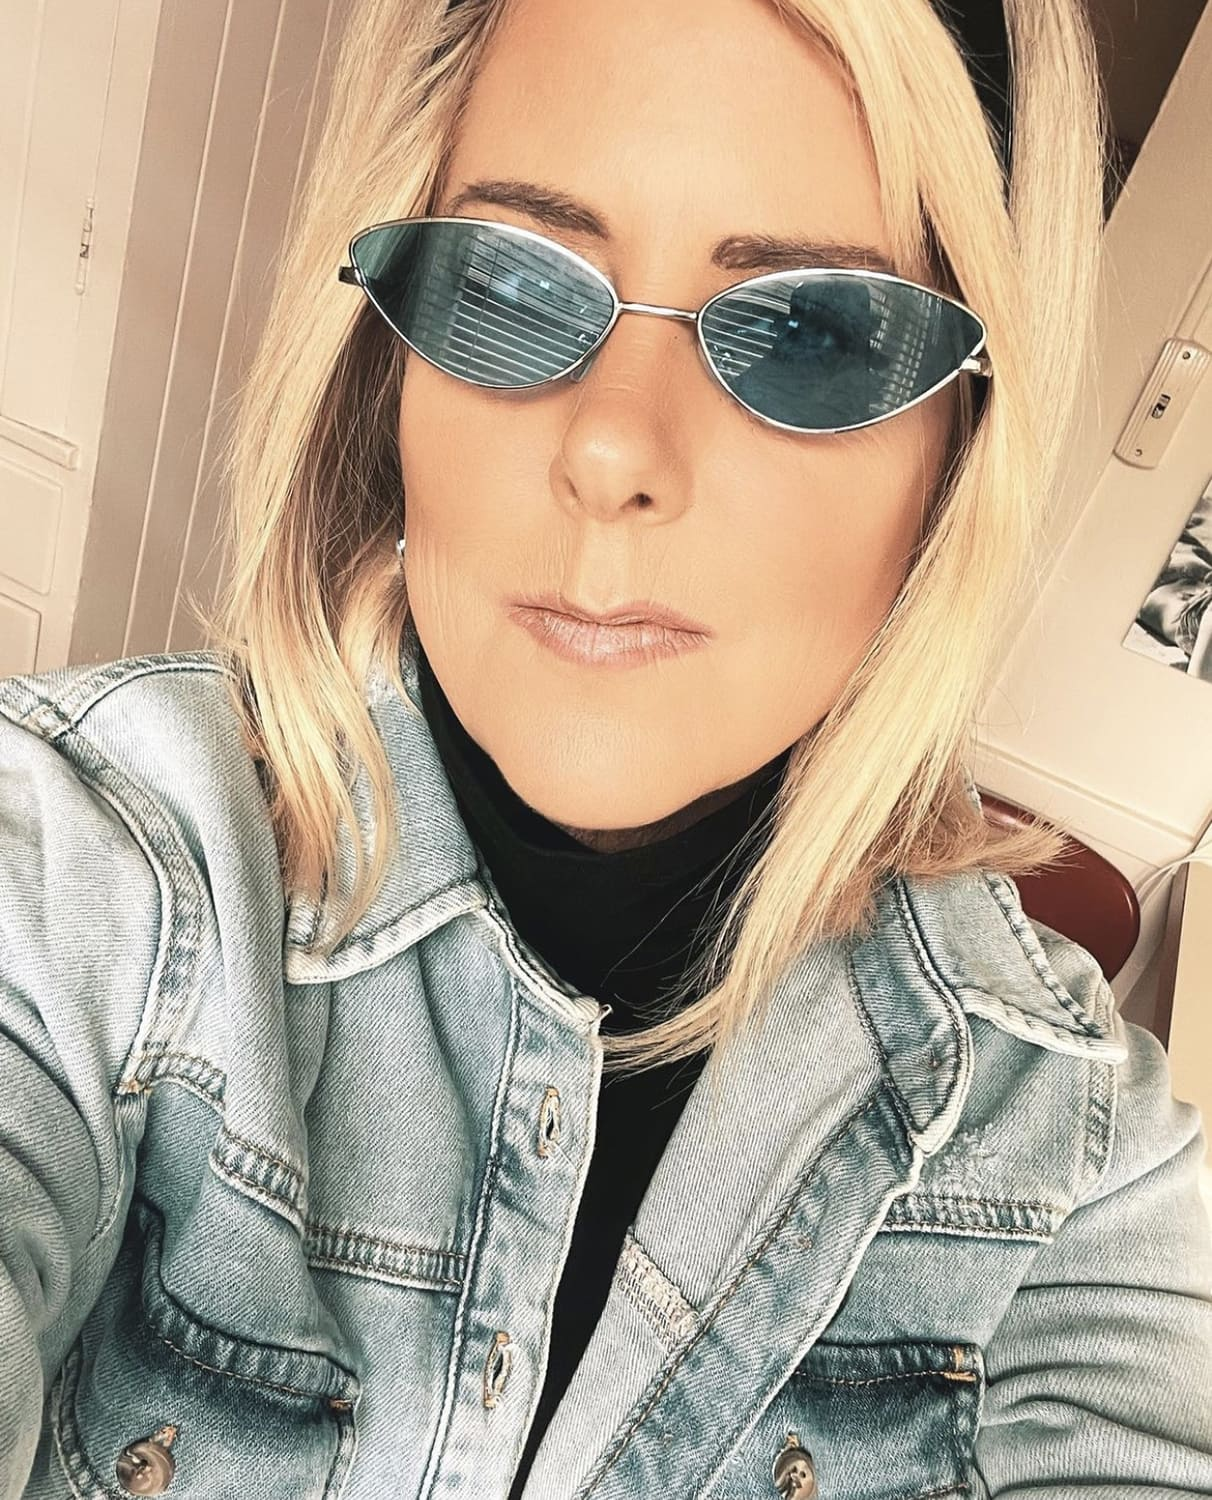 Kelly in sunglasses